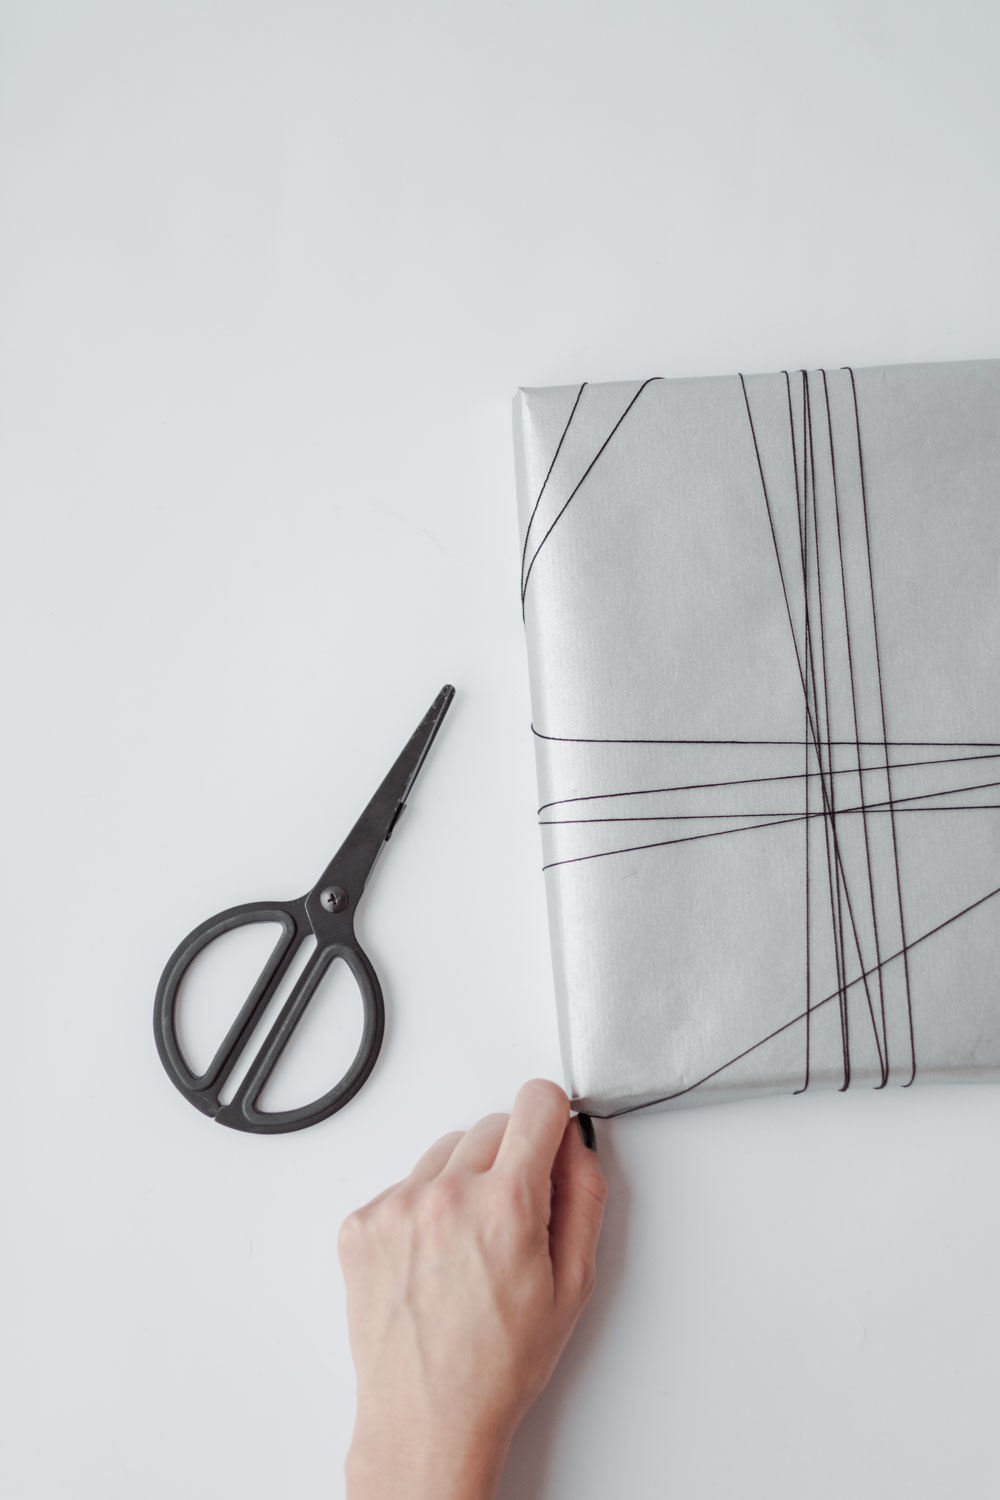 Holiday gift wrapping ideas for minimalists